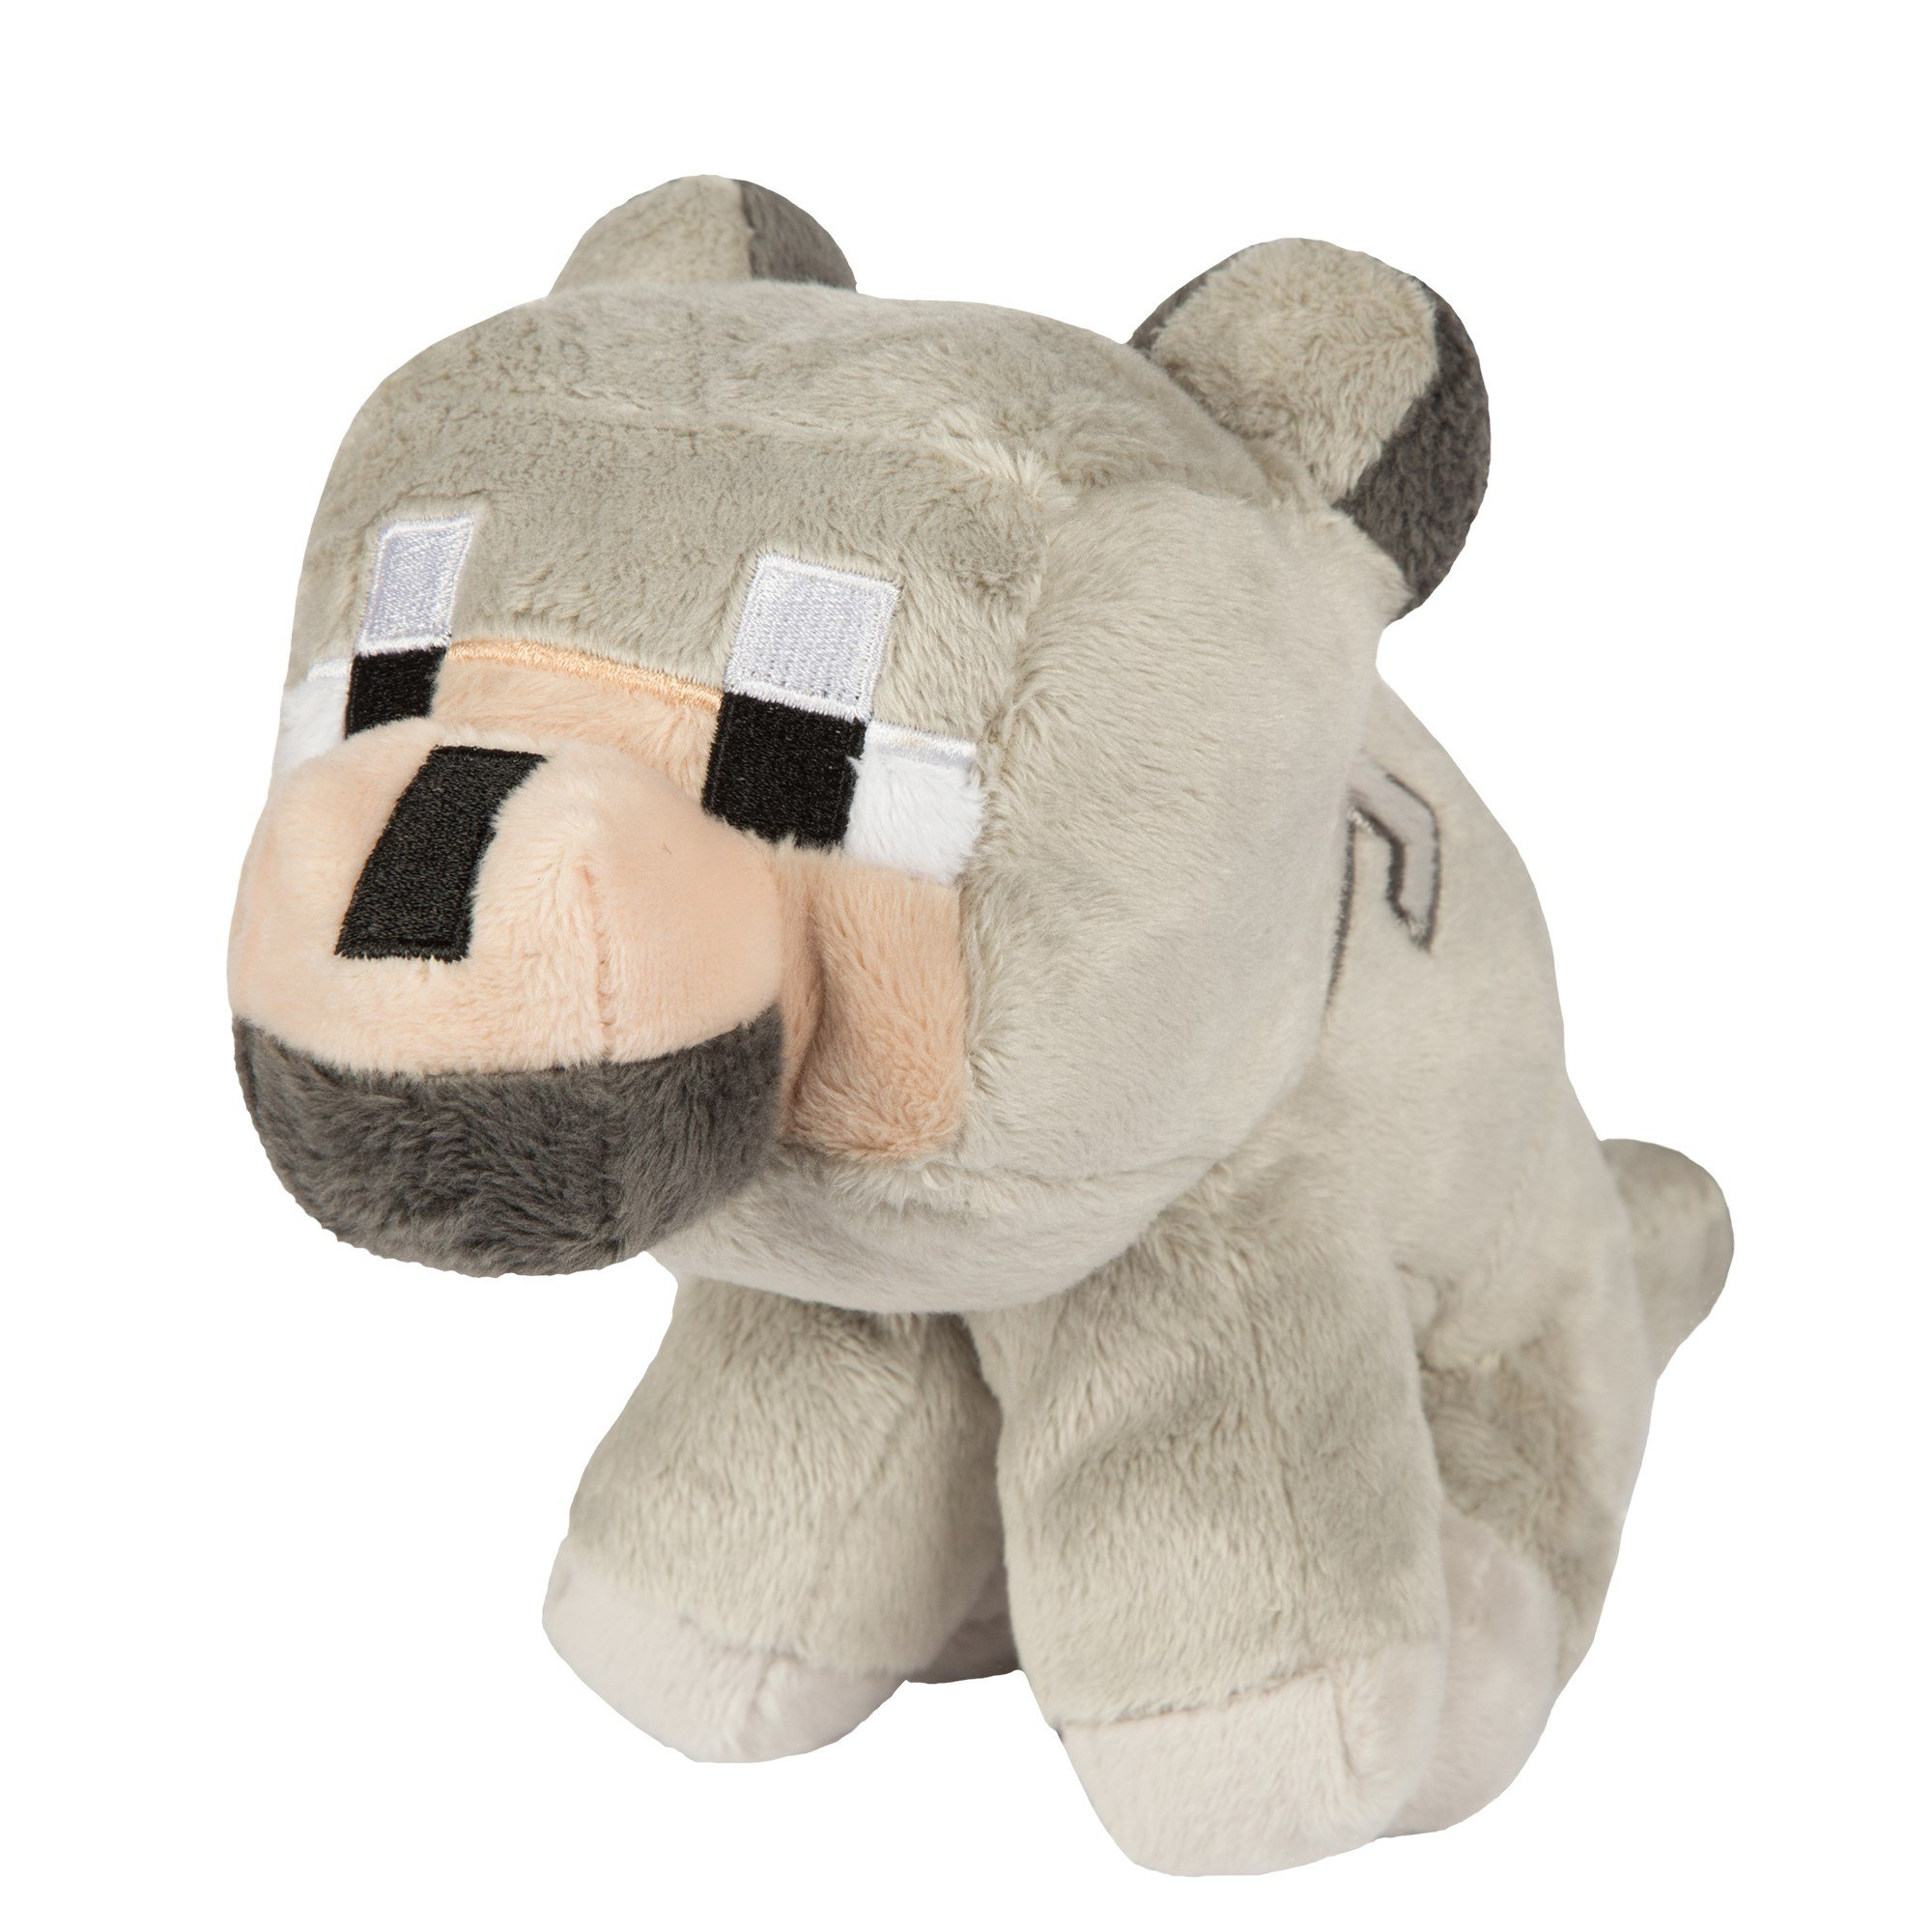 JINX Minecraft Baby Wolf Plush Stuffed Toy